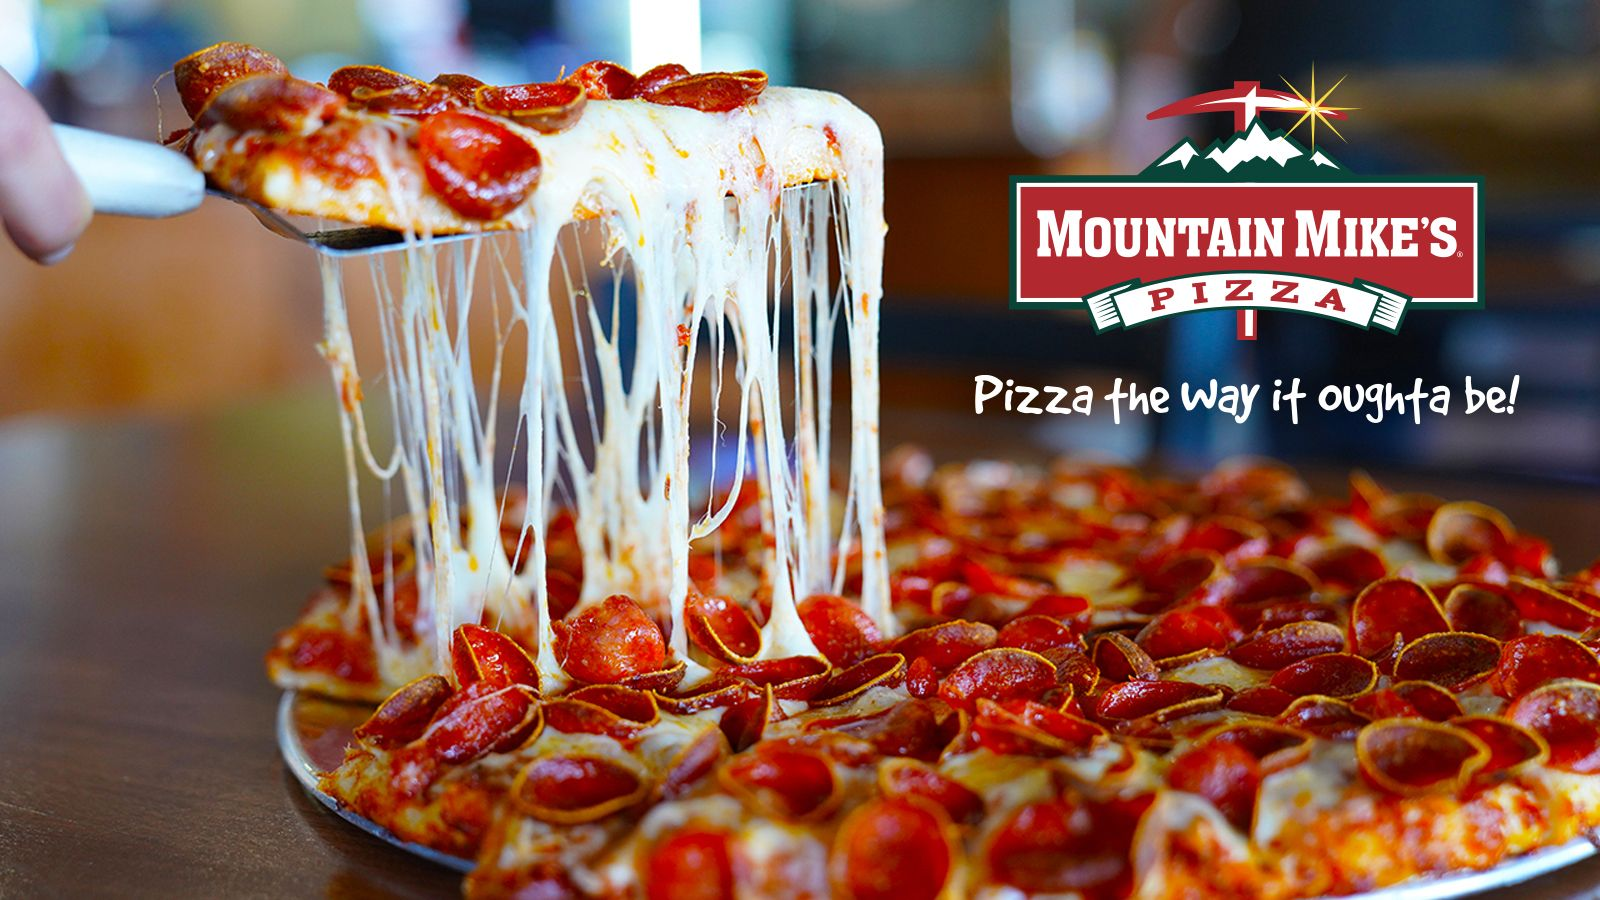 Mountain Mike's Pizza Named One of the Nation's Top-Performing Restaurant Chains by Two Industry-Leading Publications